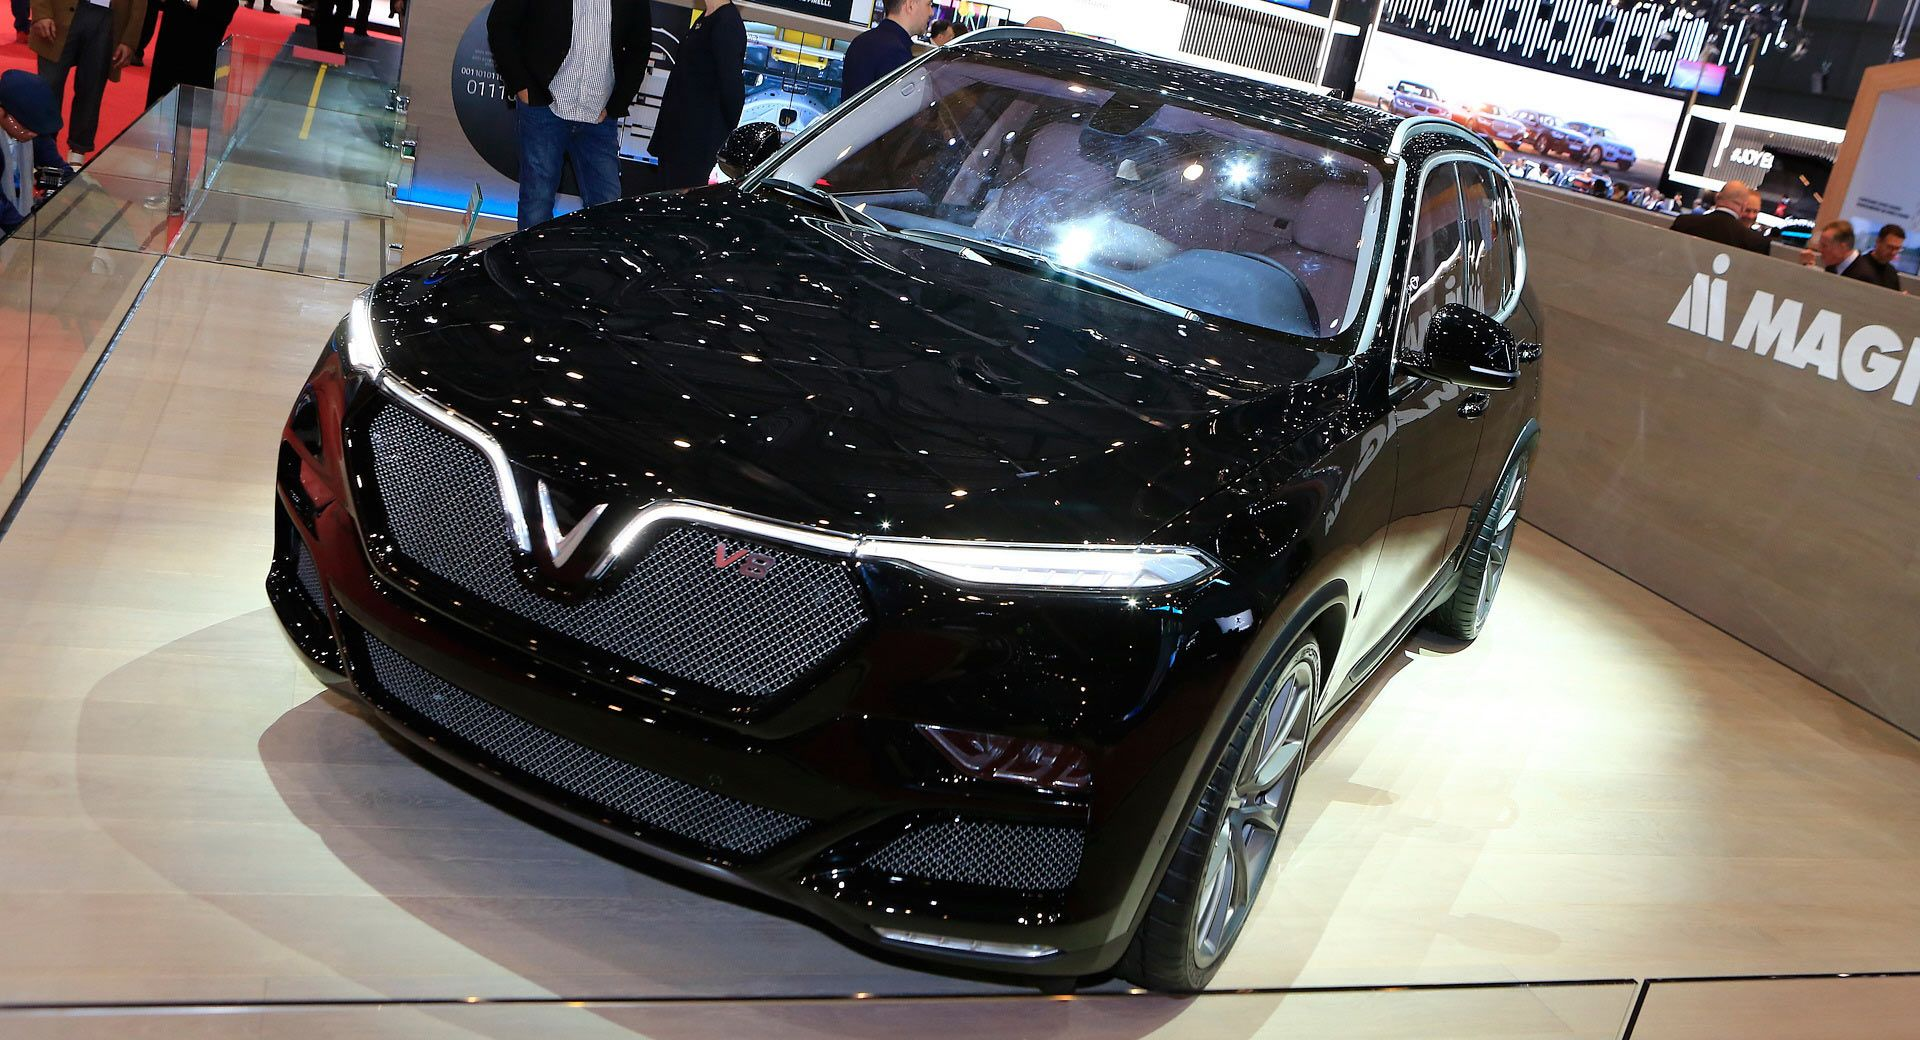 2020 Vinfast Lux V8 Limited Edition Luxury Suv Geneva Motor Show Luxury Suv Suv Geneva Motor Show